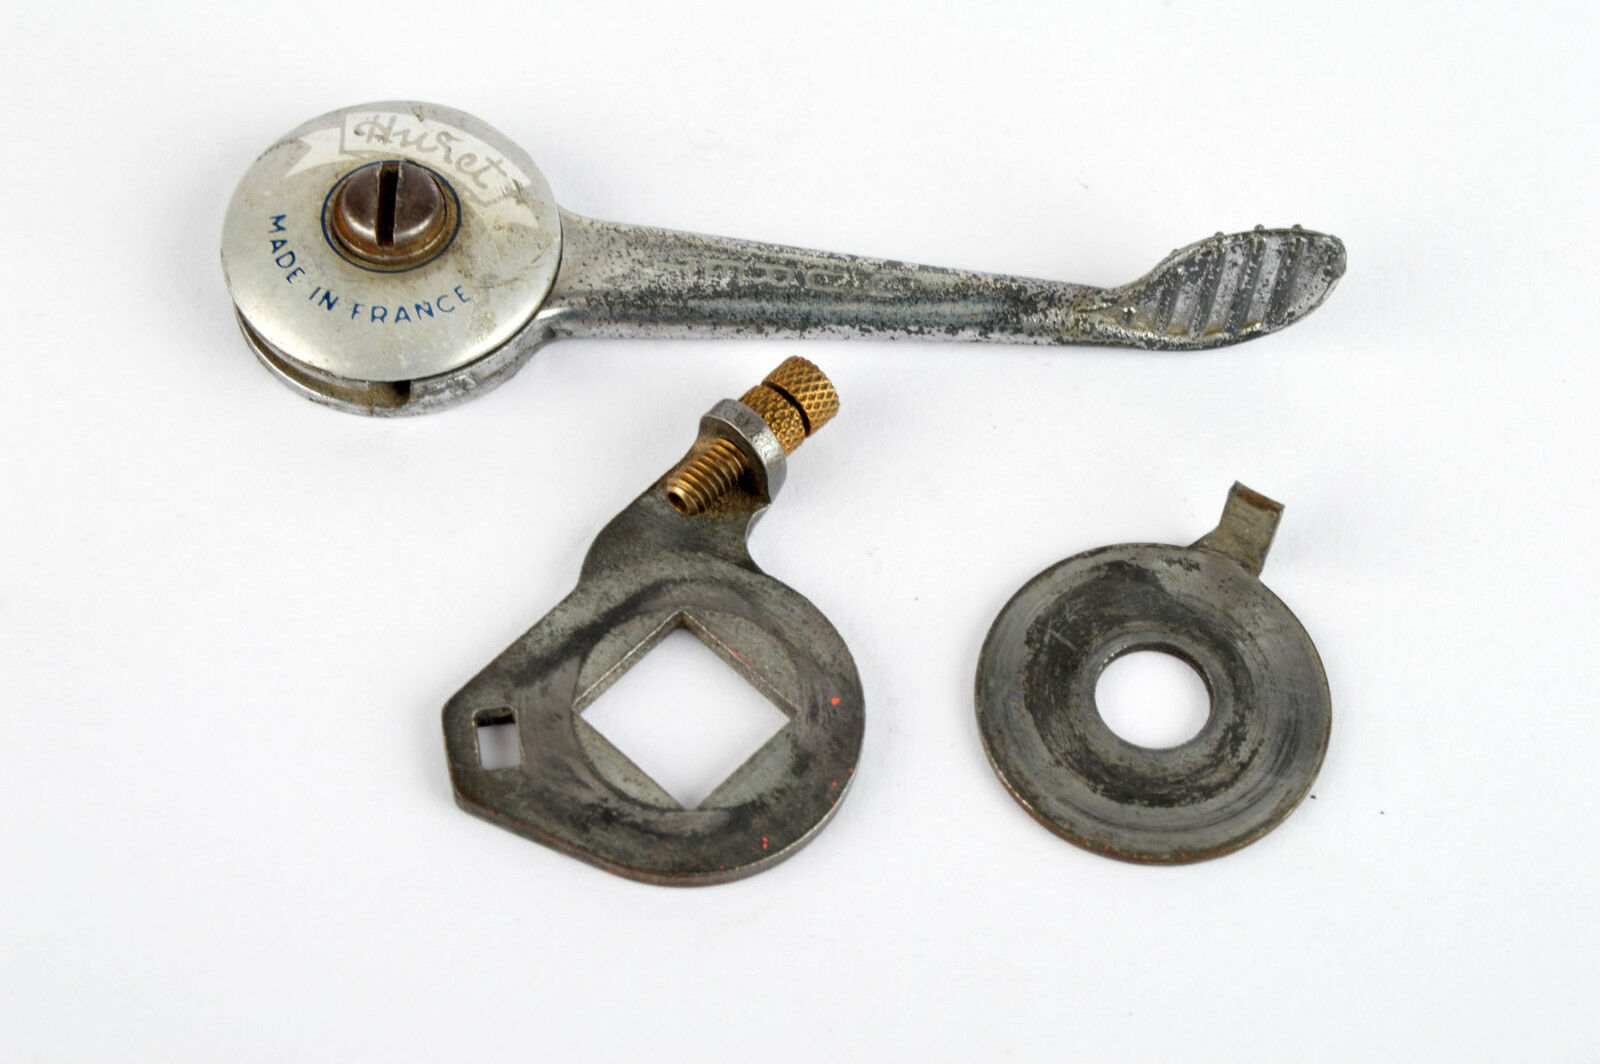 Single Huret braze-on shifter from the 1960s